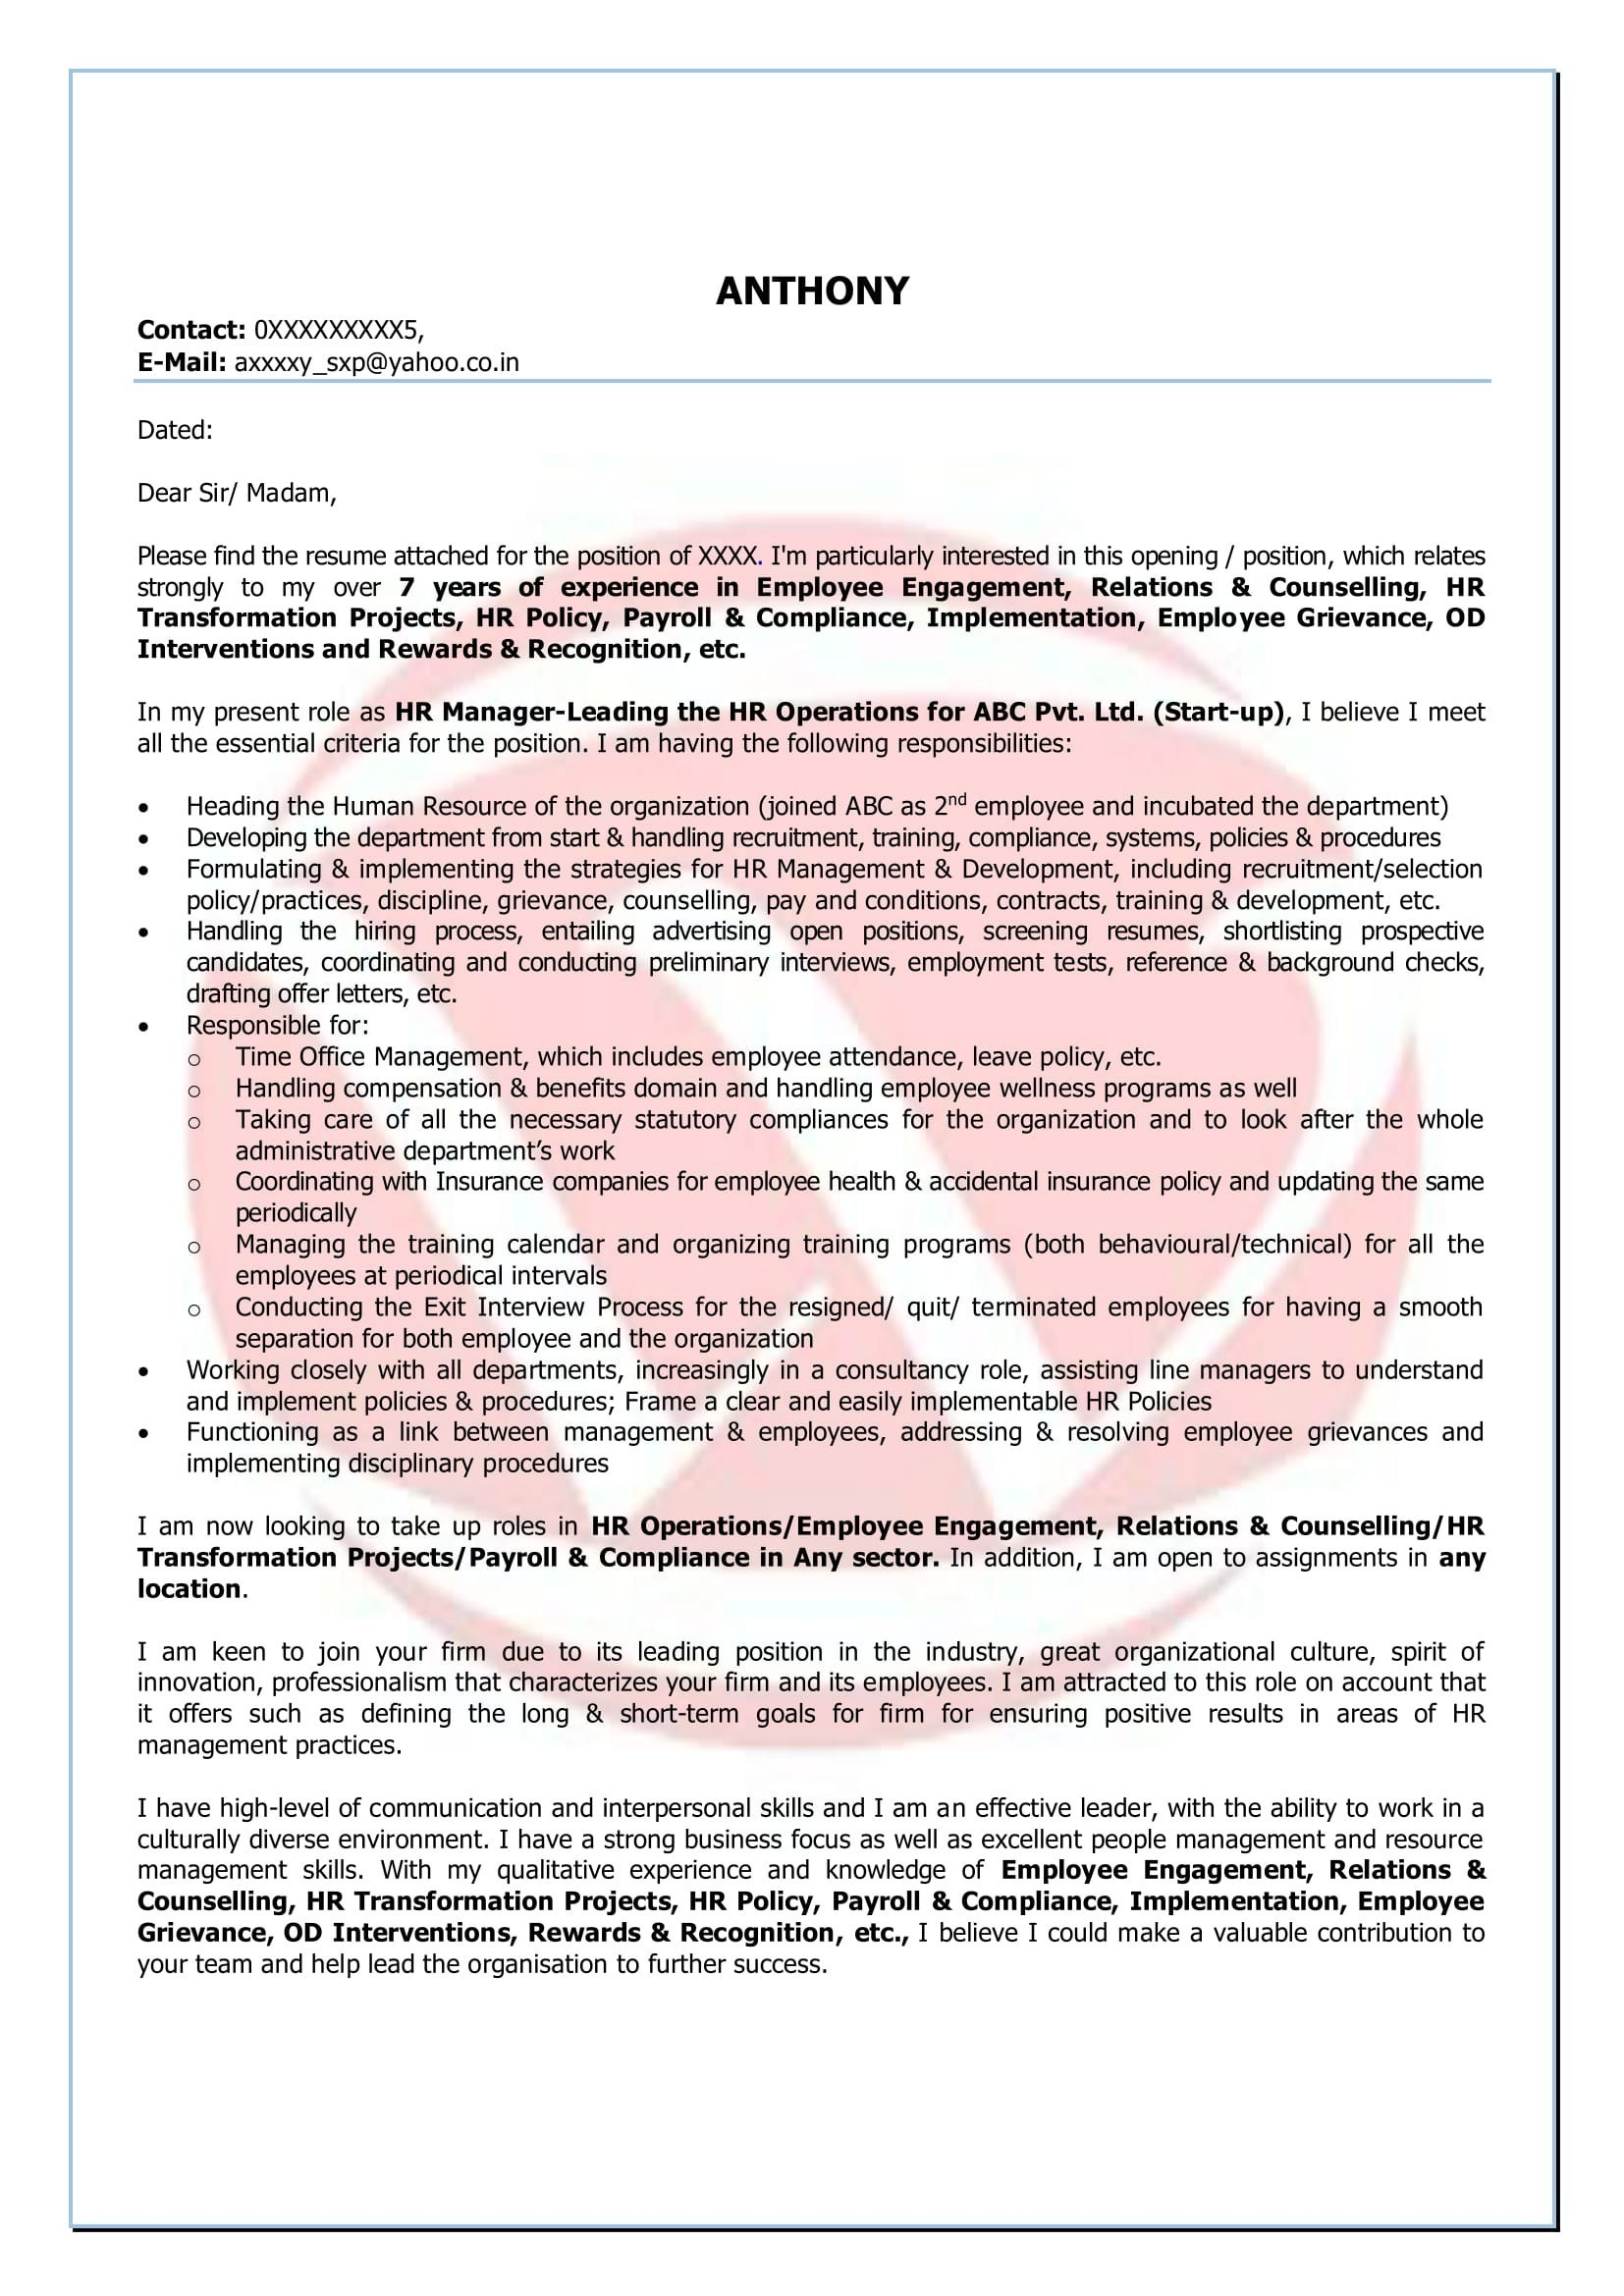 Power Of attorney Letter Template - Elegant Business Power attorney Template